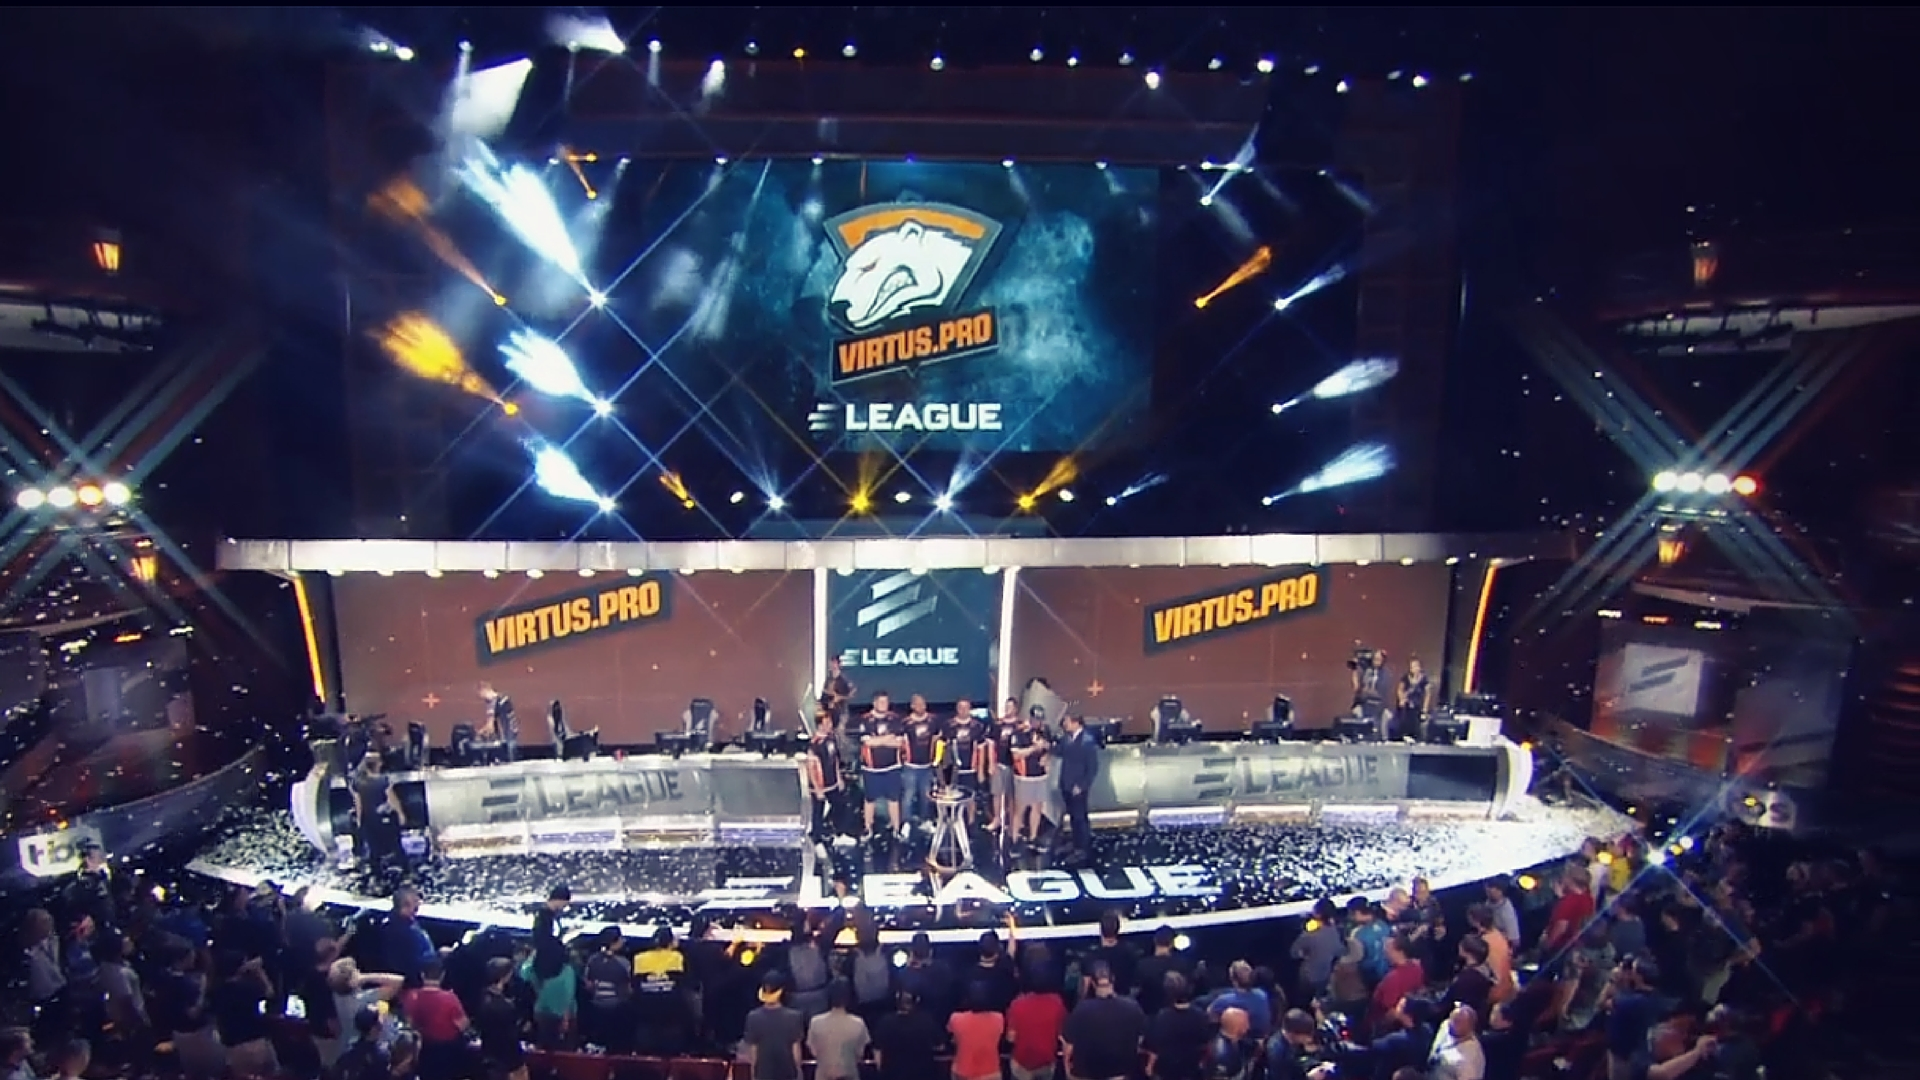 virtus pro beats fnatic eleague